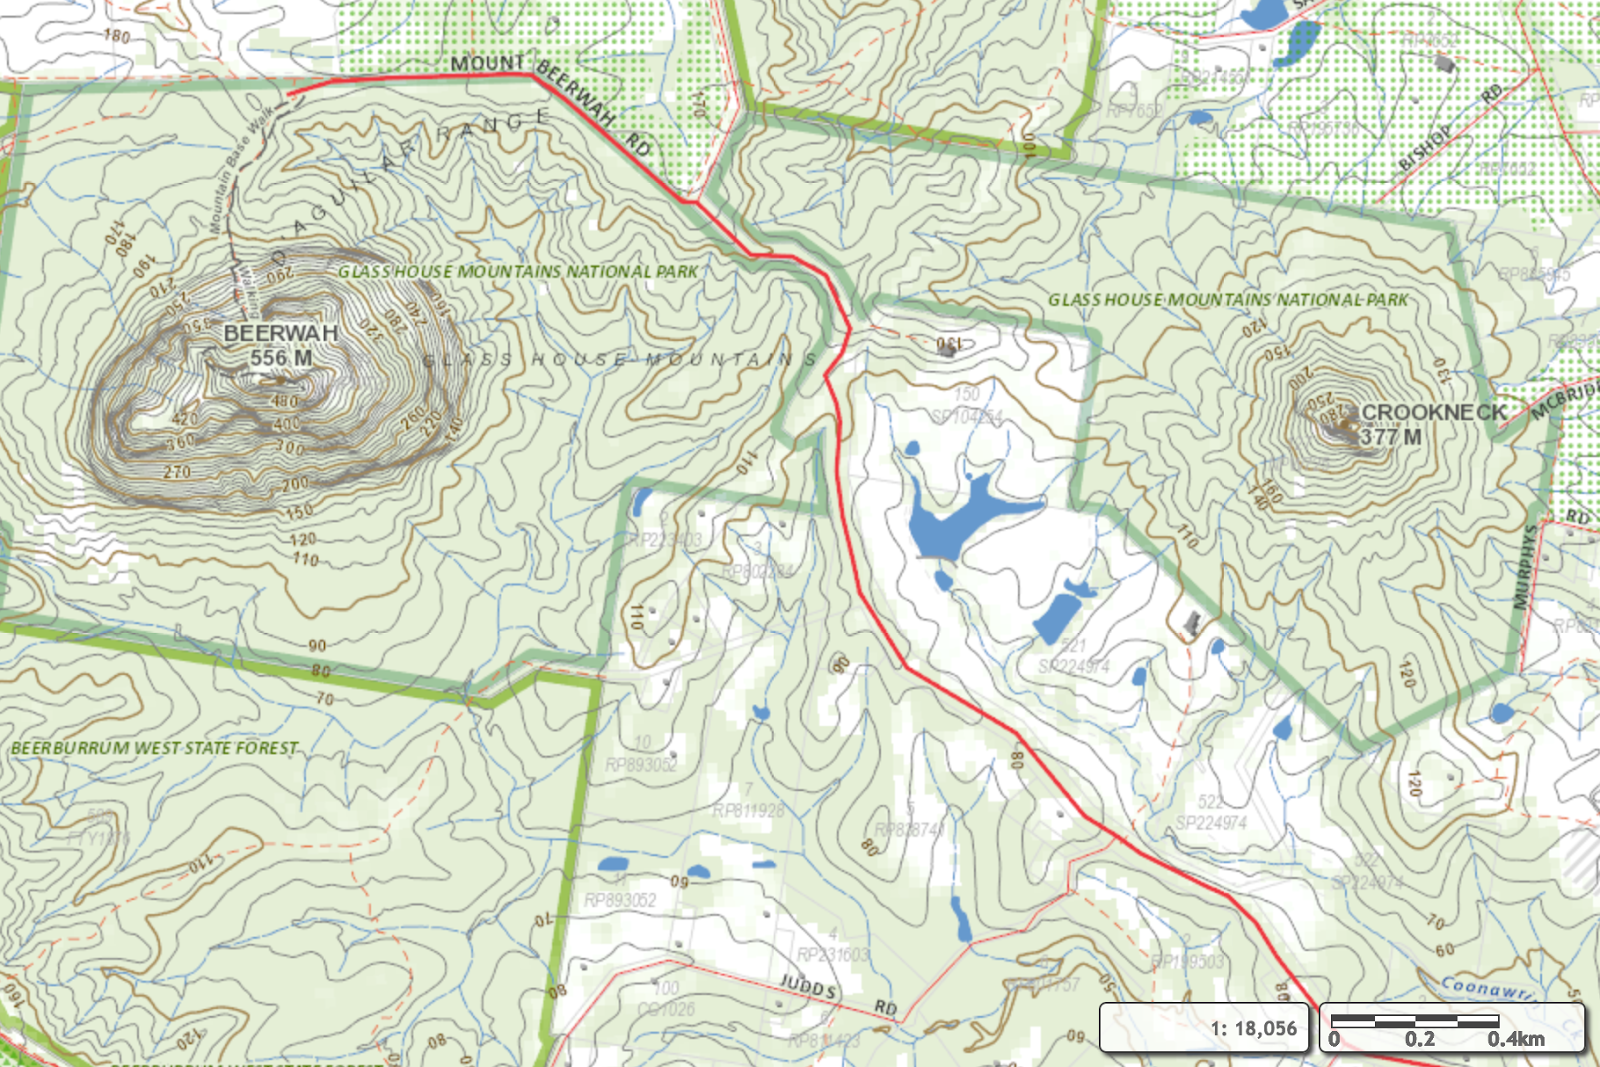 Glasshouse Mountains Traverse Plan A Running in the Rain